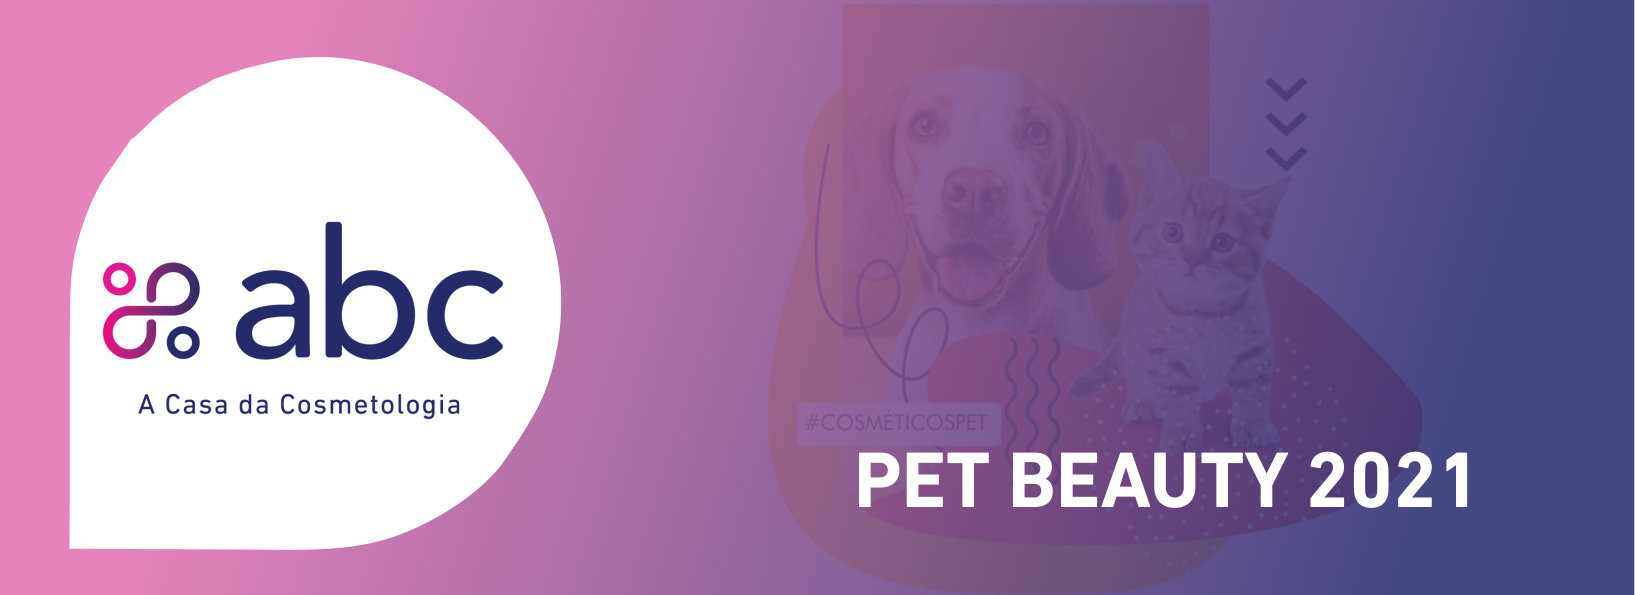 Logo Pet ABC.jpg